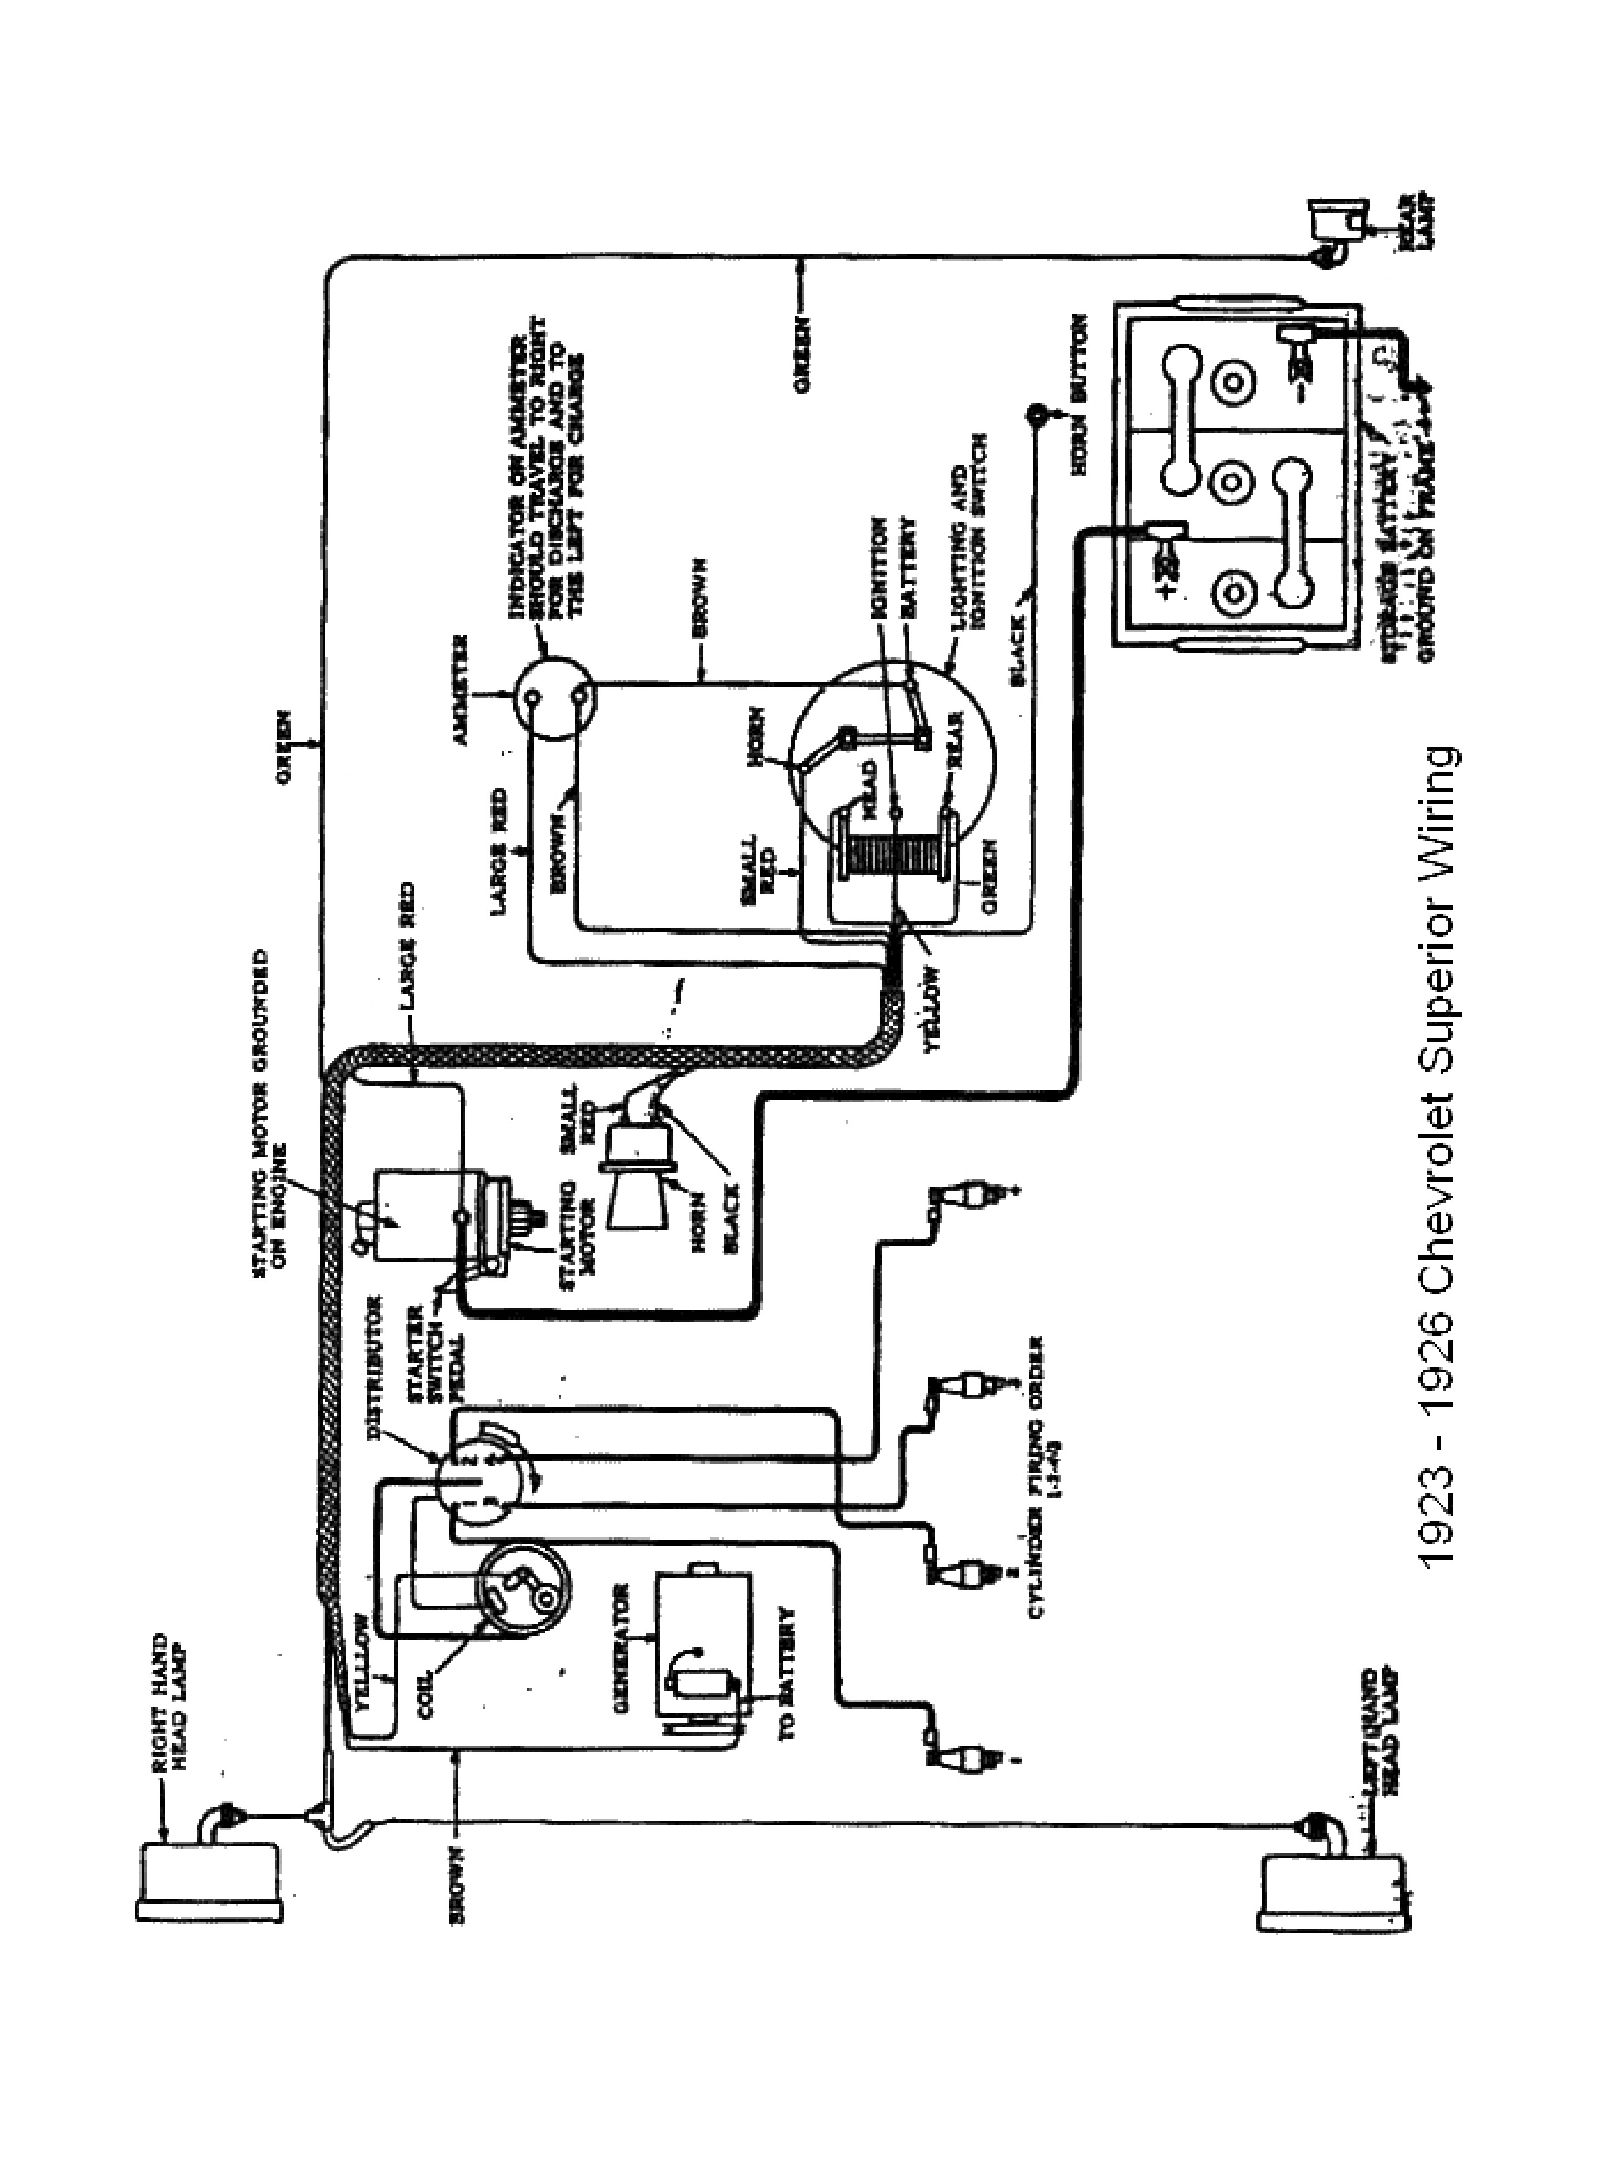 chevy wiring diagrams 1949 Studebaker 4 Door 1923 superior model 1923 superior model